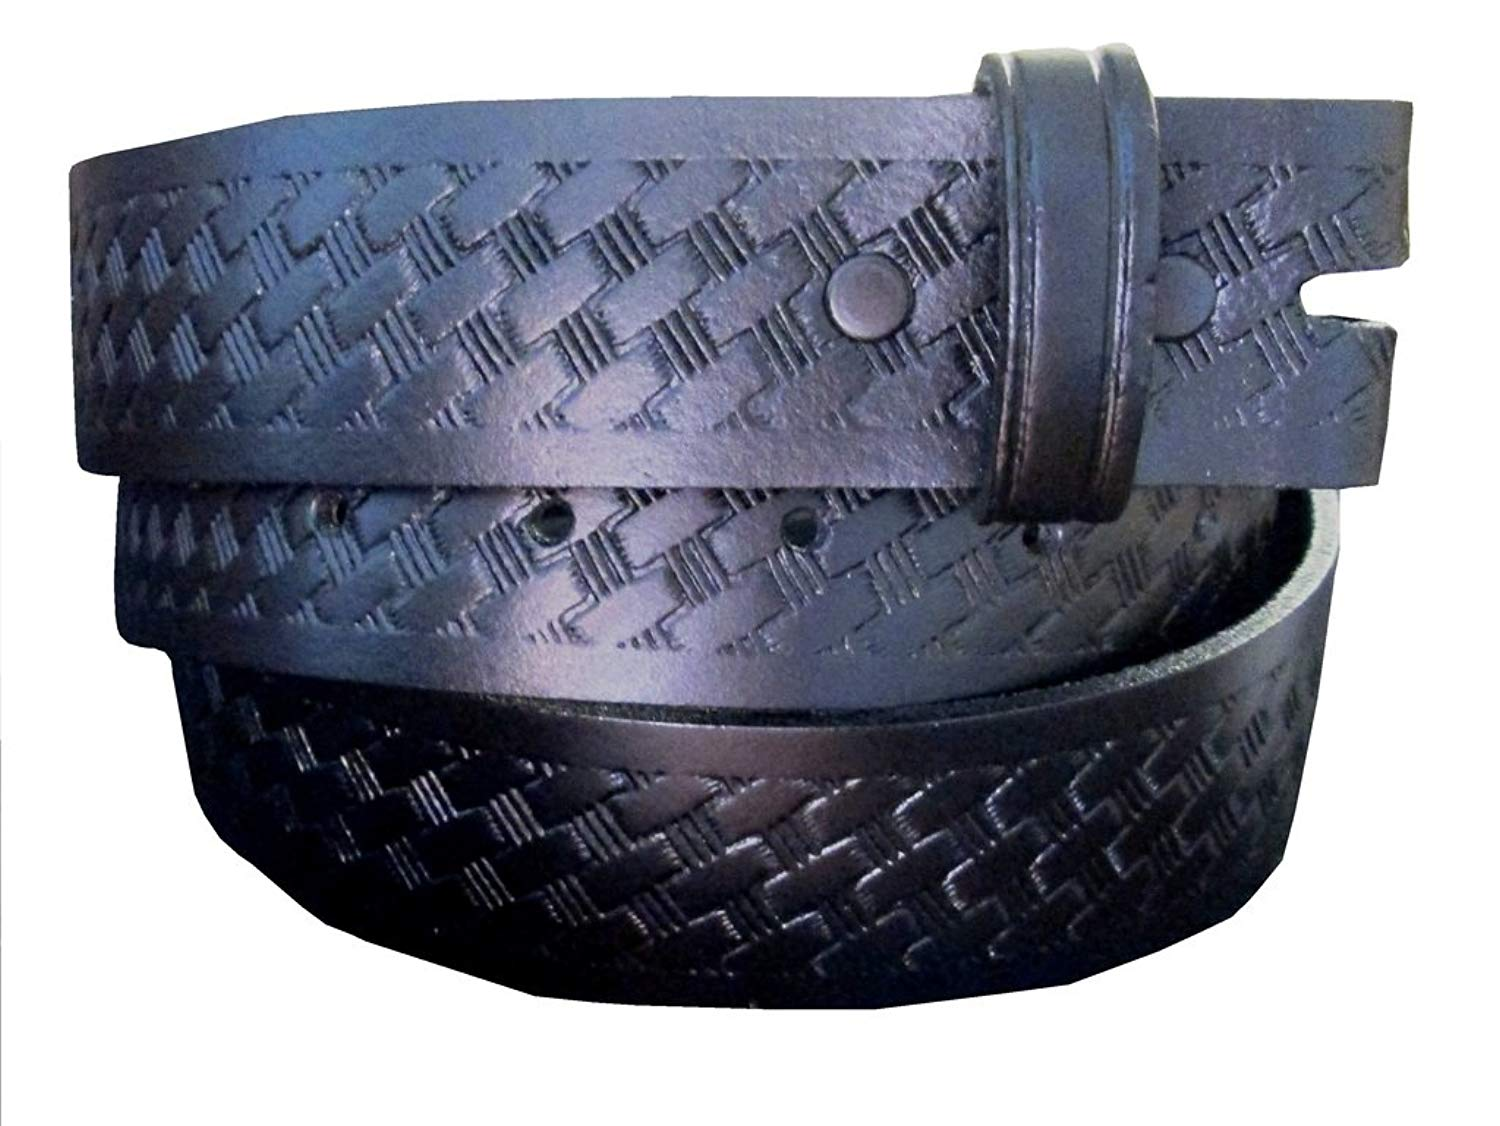 Belt for Buckles 100% Top Grain One Piece Leather Basket Weave Belt, Made in USA